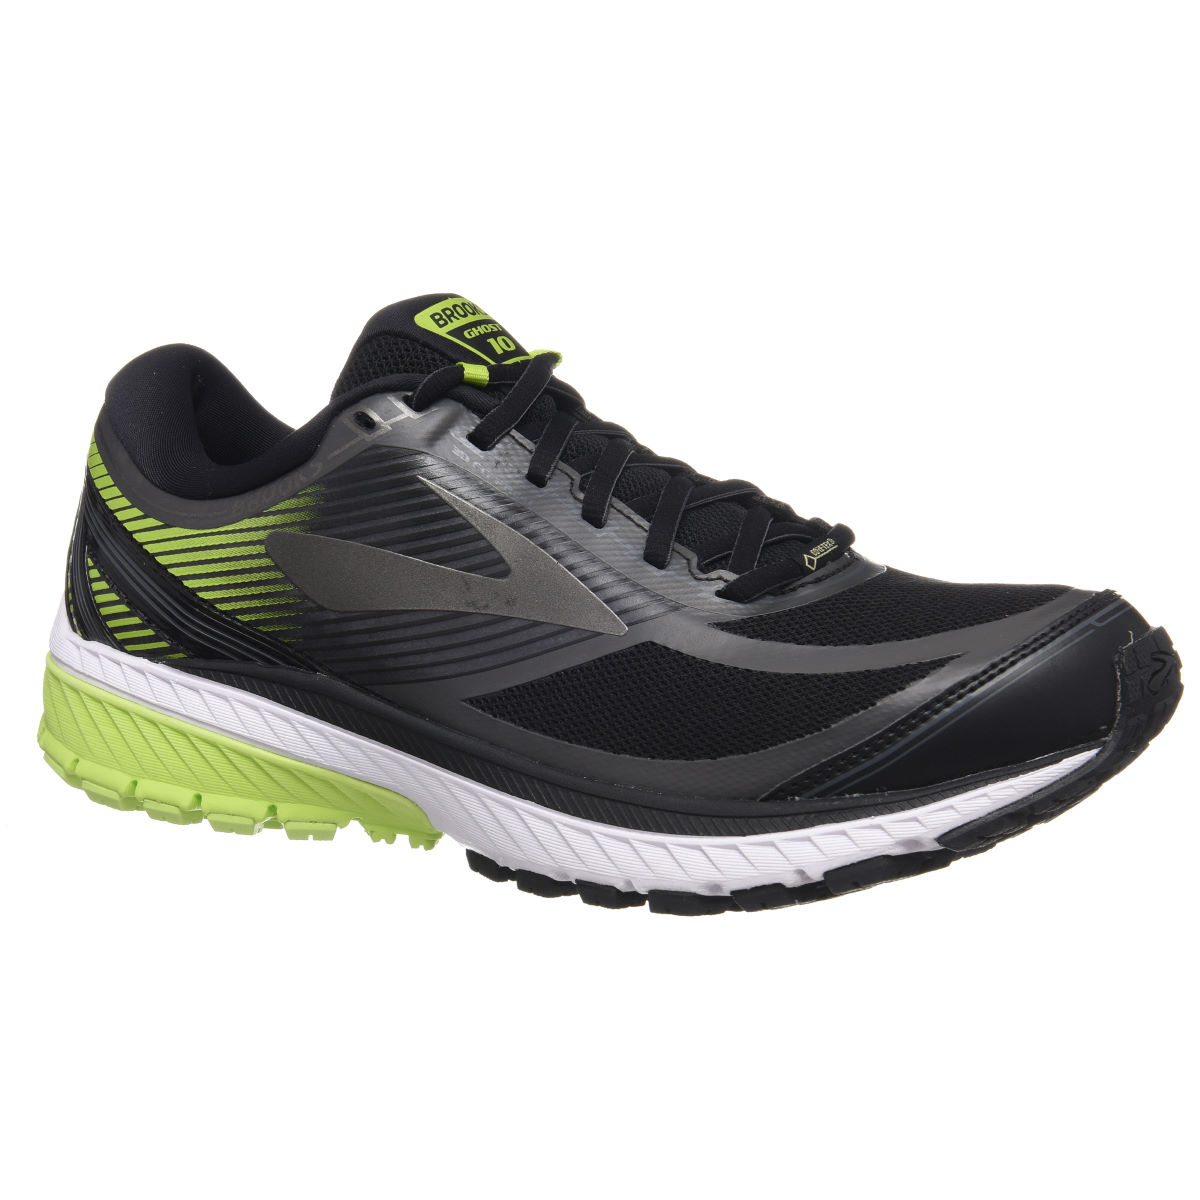 Brooks Ghost 10 GTX Shoes - Zapatillas acolchadas